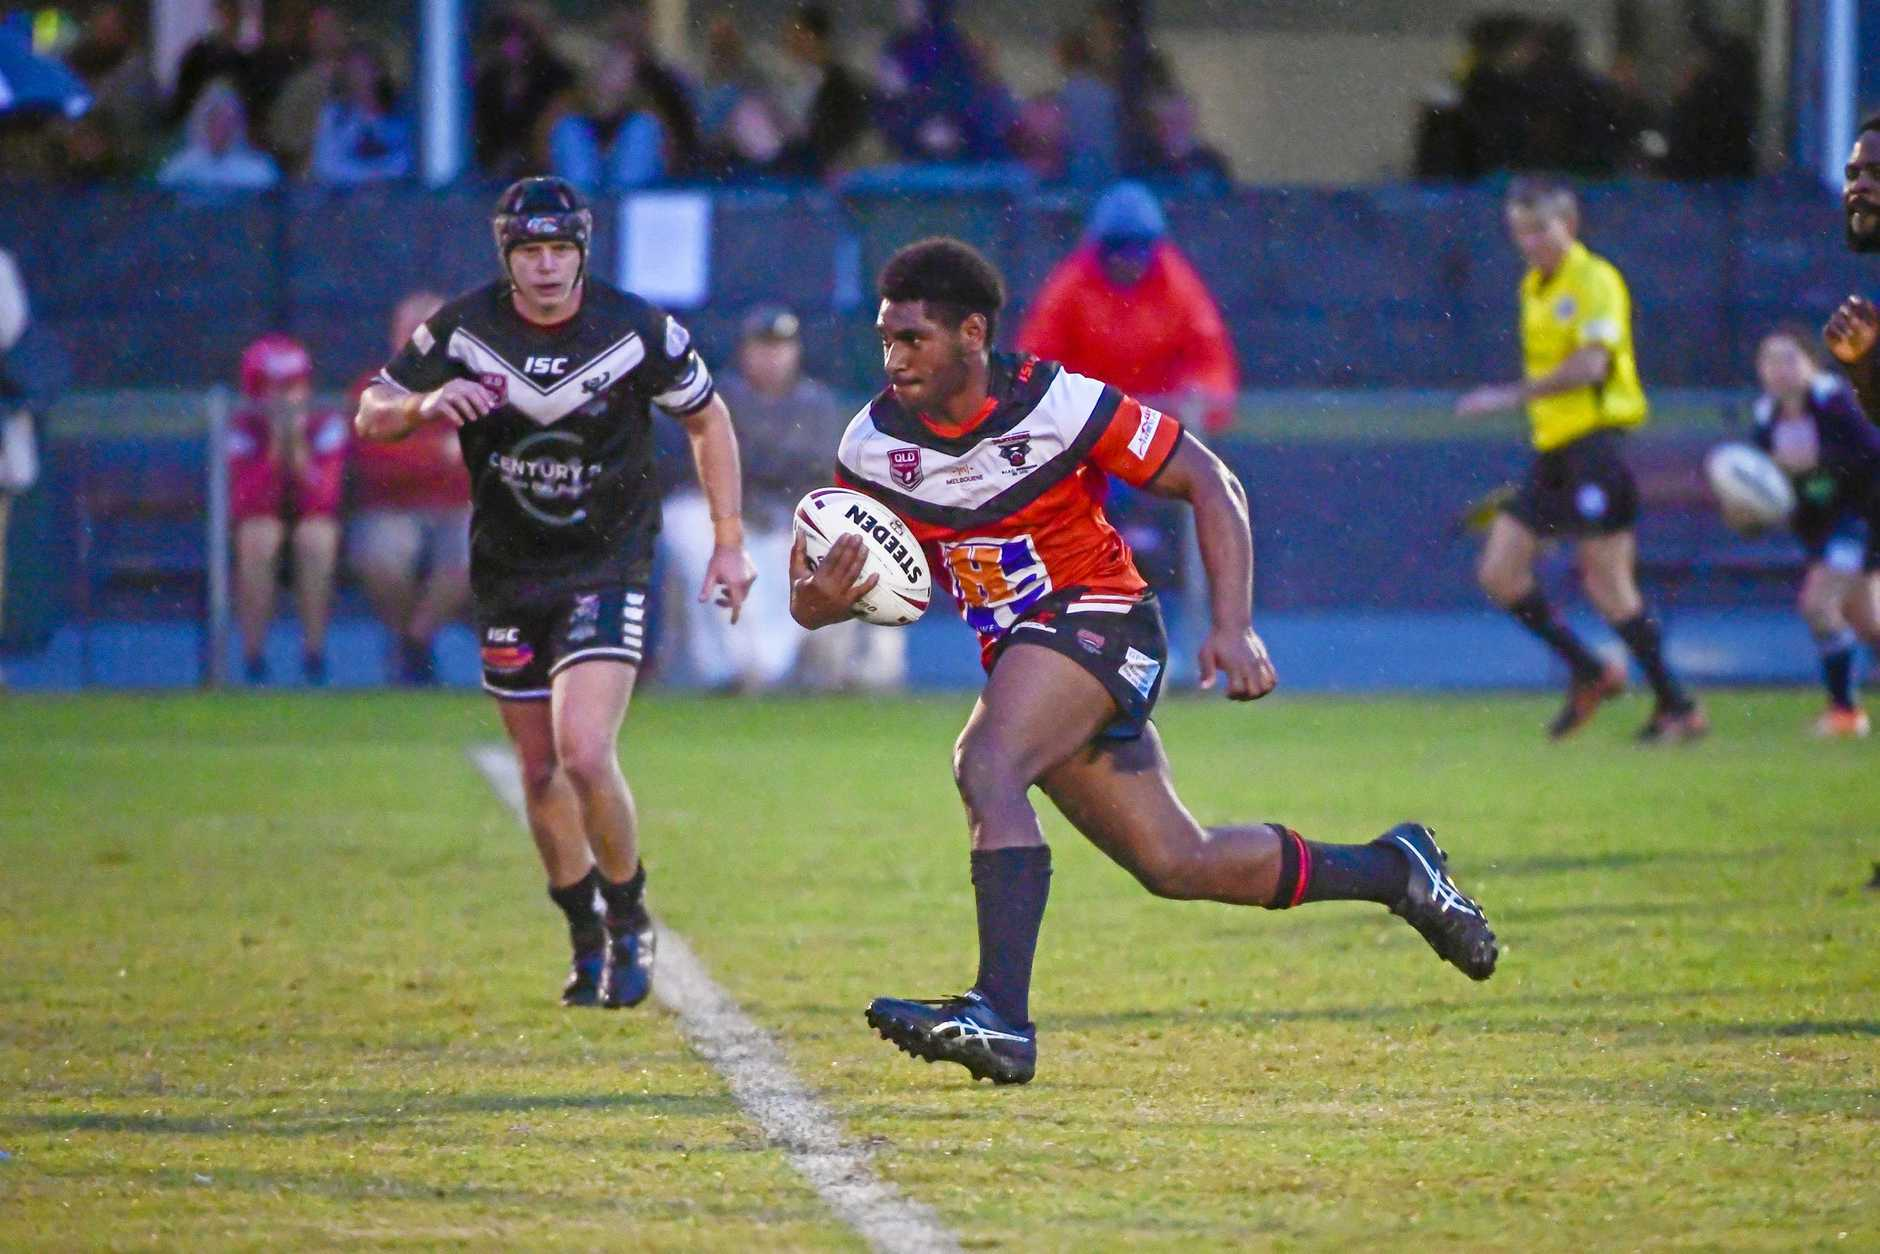 ON ATTACK: Western Suburbs player Livingstone Lingawa, in action last week, scored two tries on Saturday.